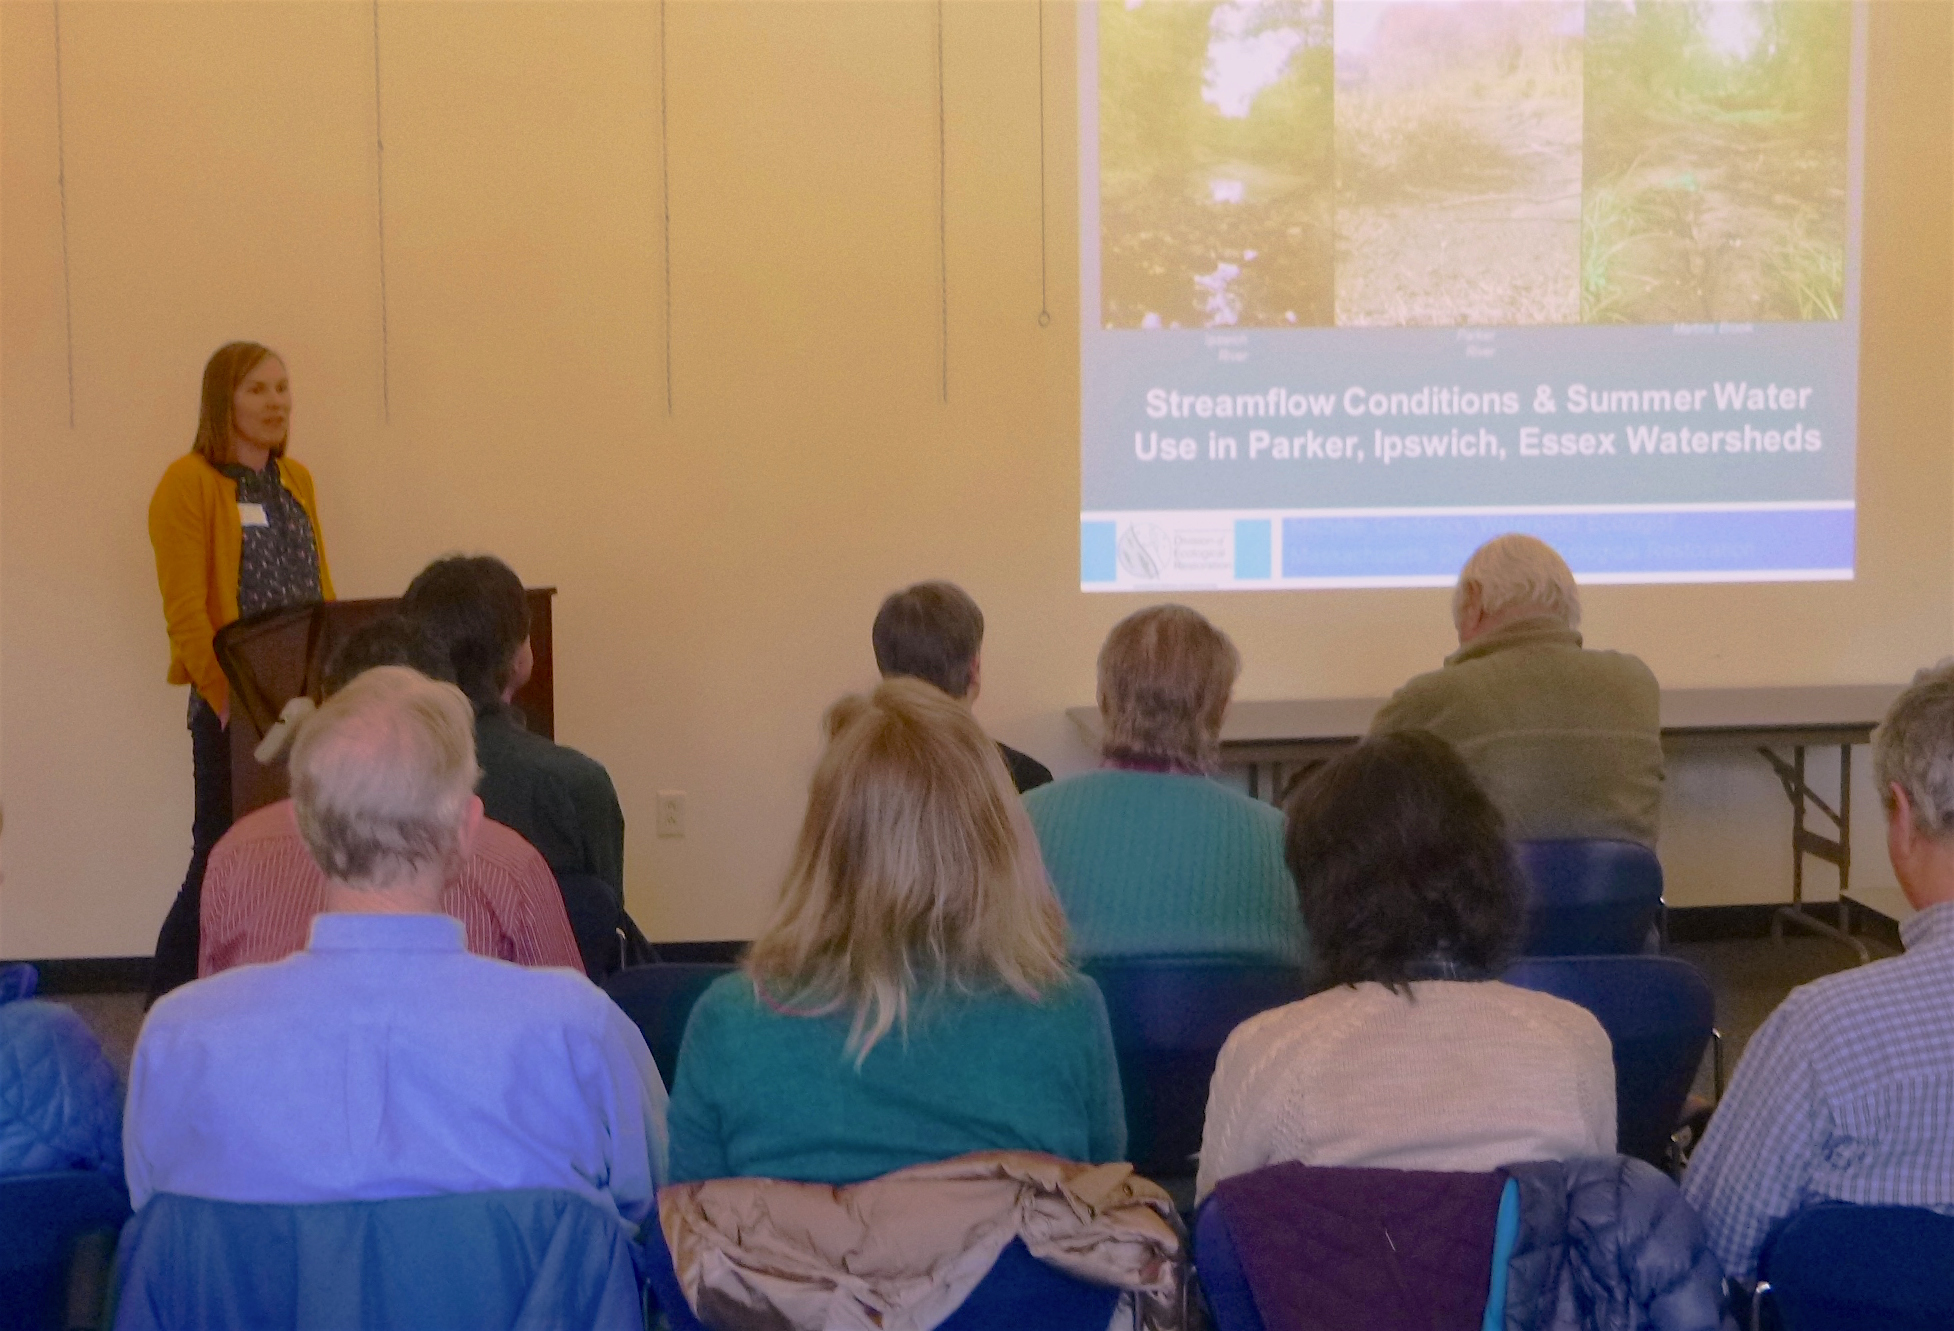 Michelle Craddock, Watershed Ecologist For The MA Division Of Ecological Restoration, Presents On Streamflow Data.